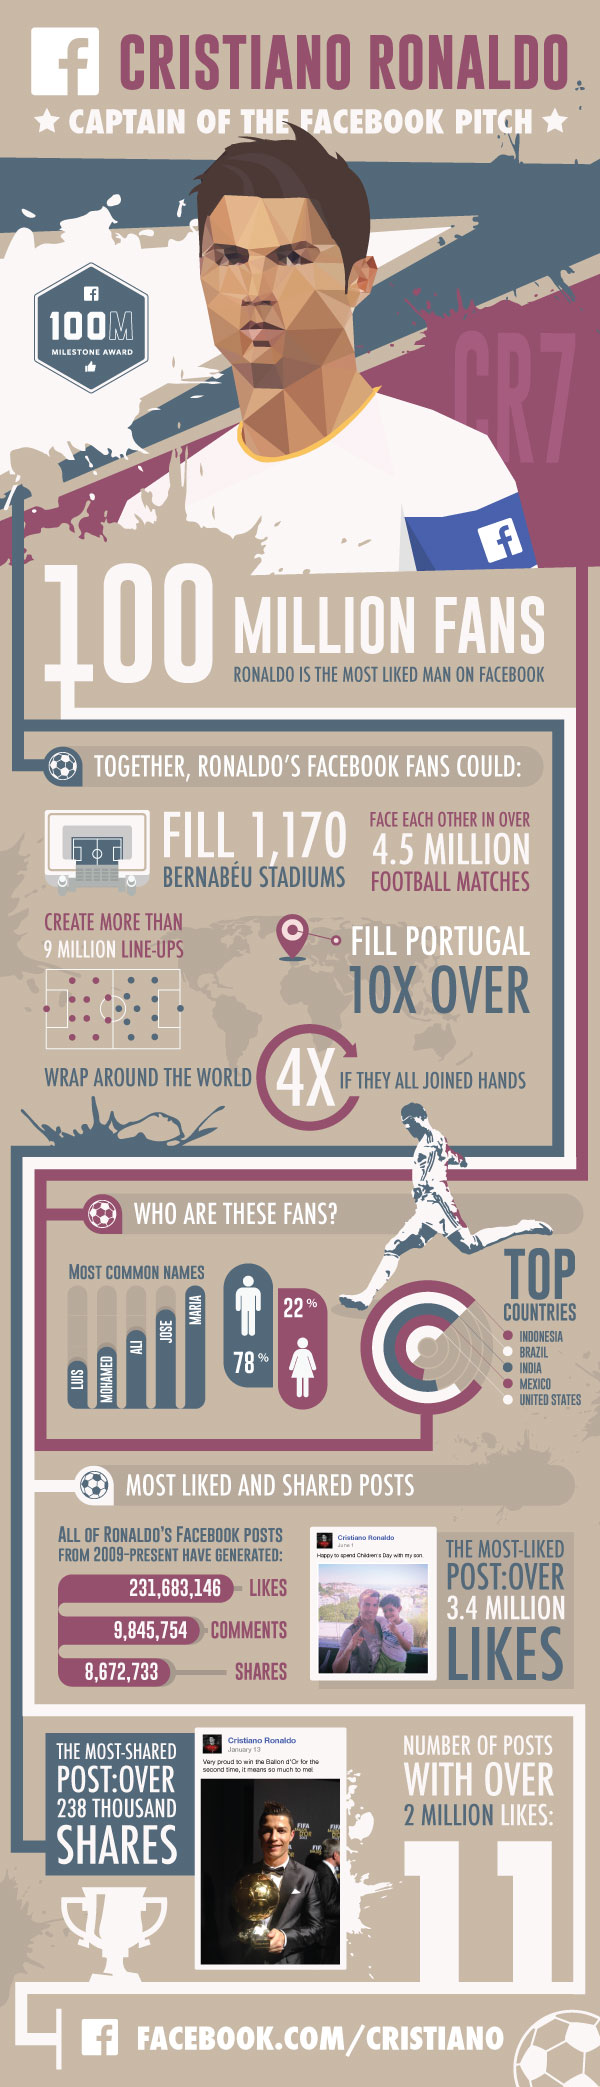 Ronaldo hits 100 million likes on Facebook, becomes most liked man on FB 5